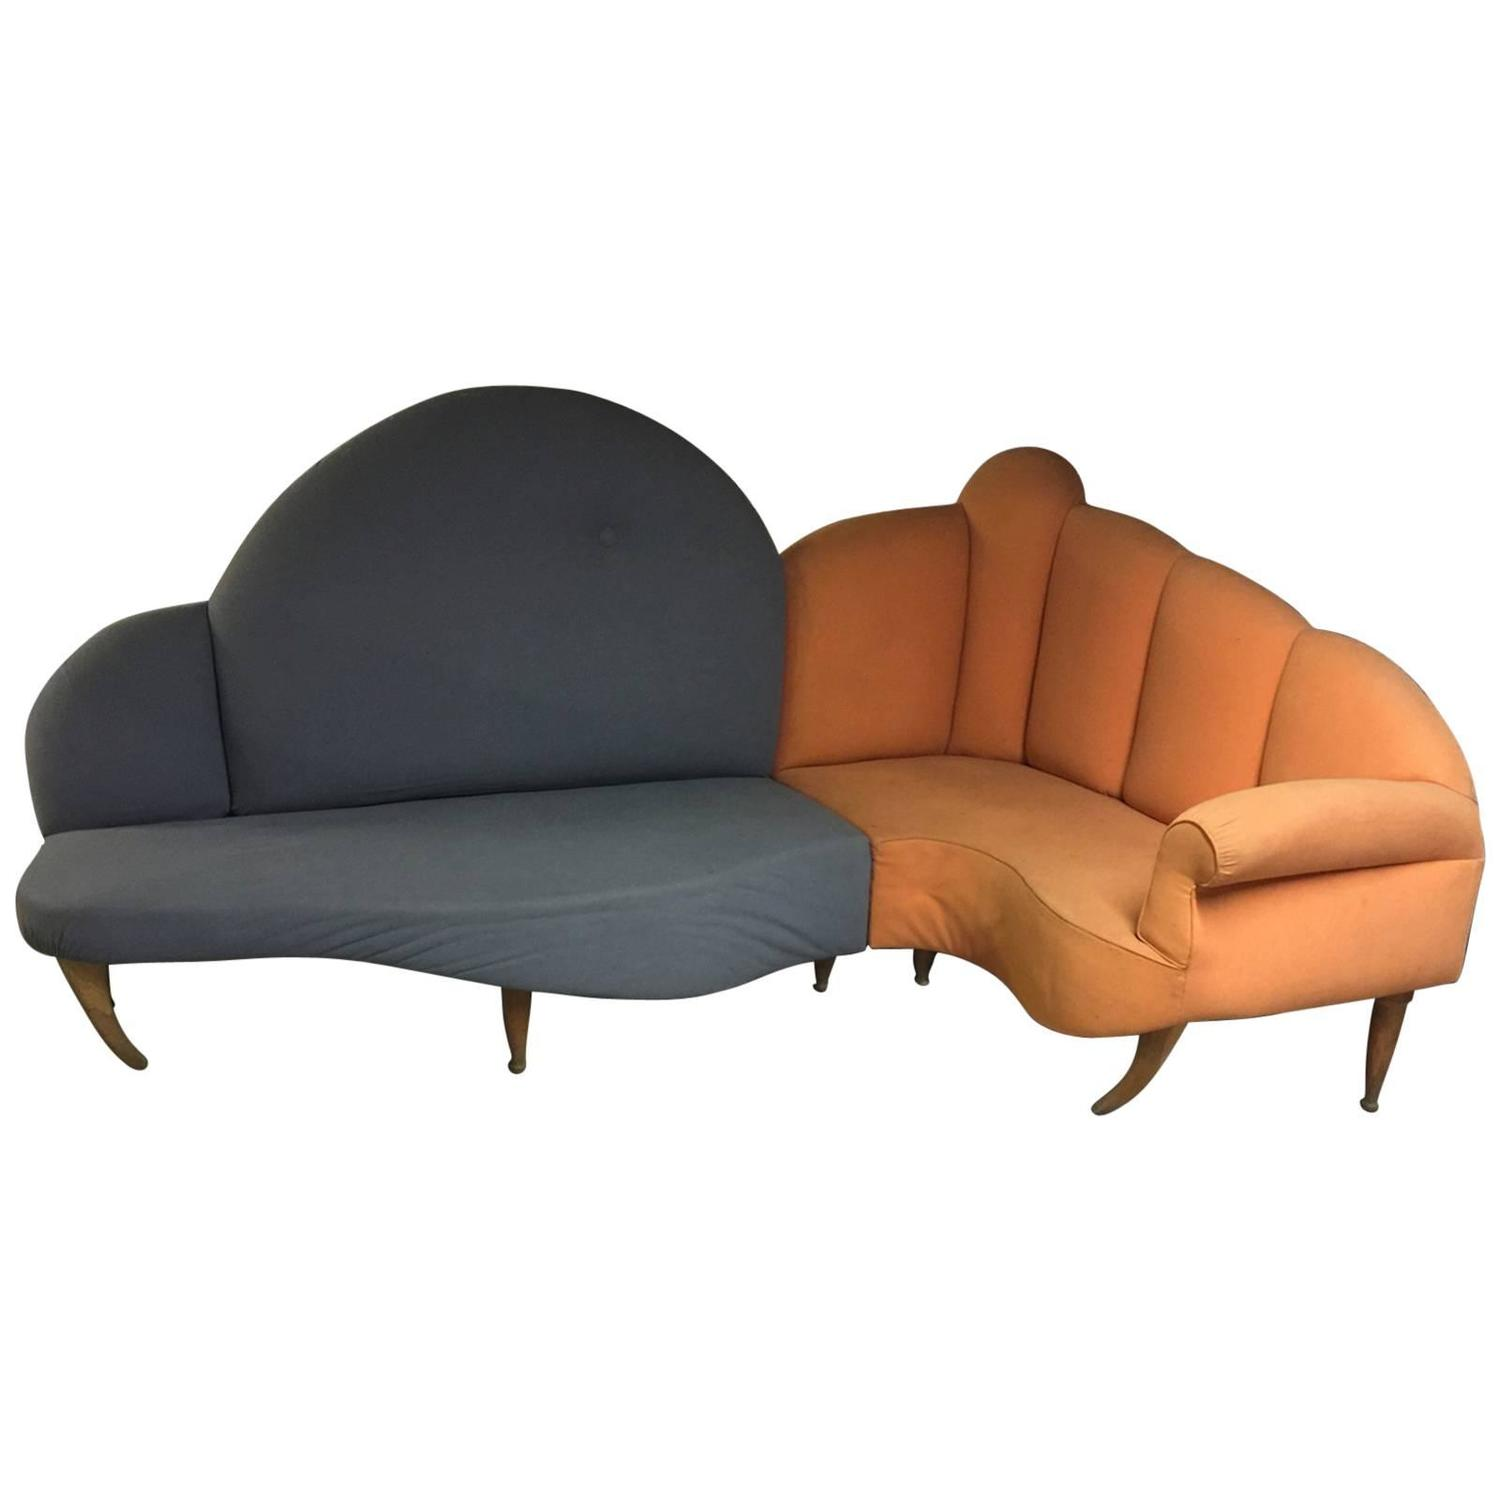 unique italien sofa for sale at 1stdibs. Black Bedroom Furniture Sets. Home Design Ideas